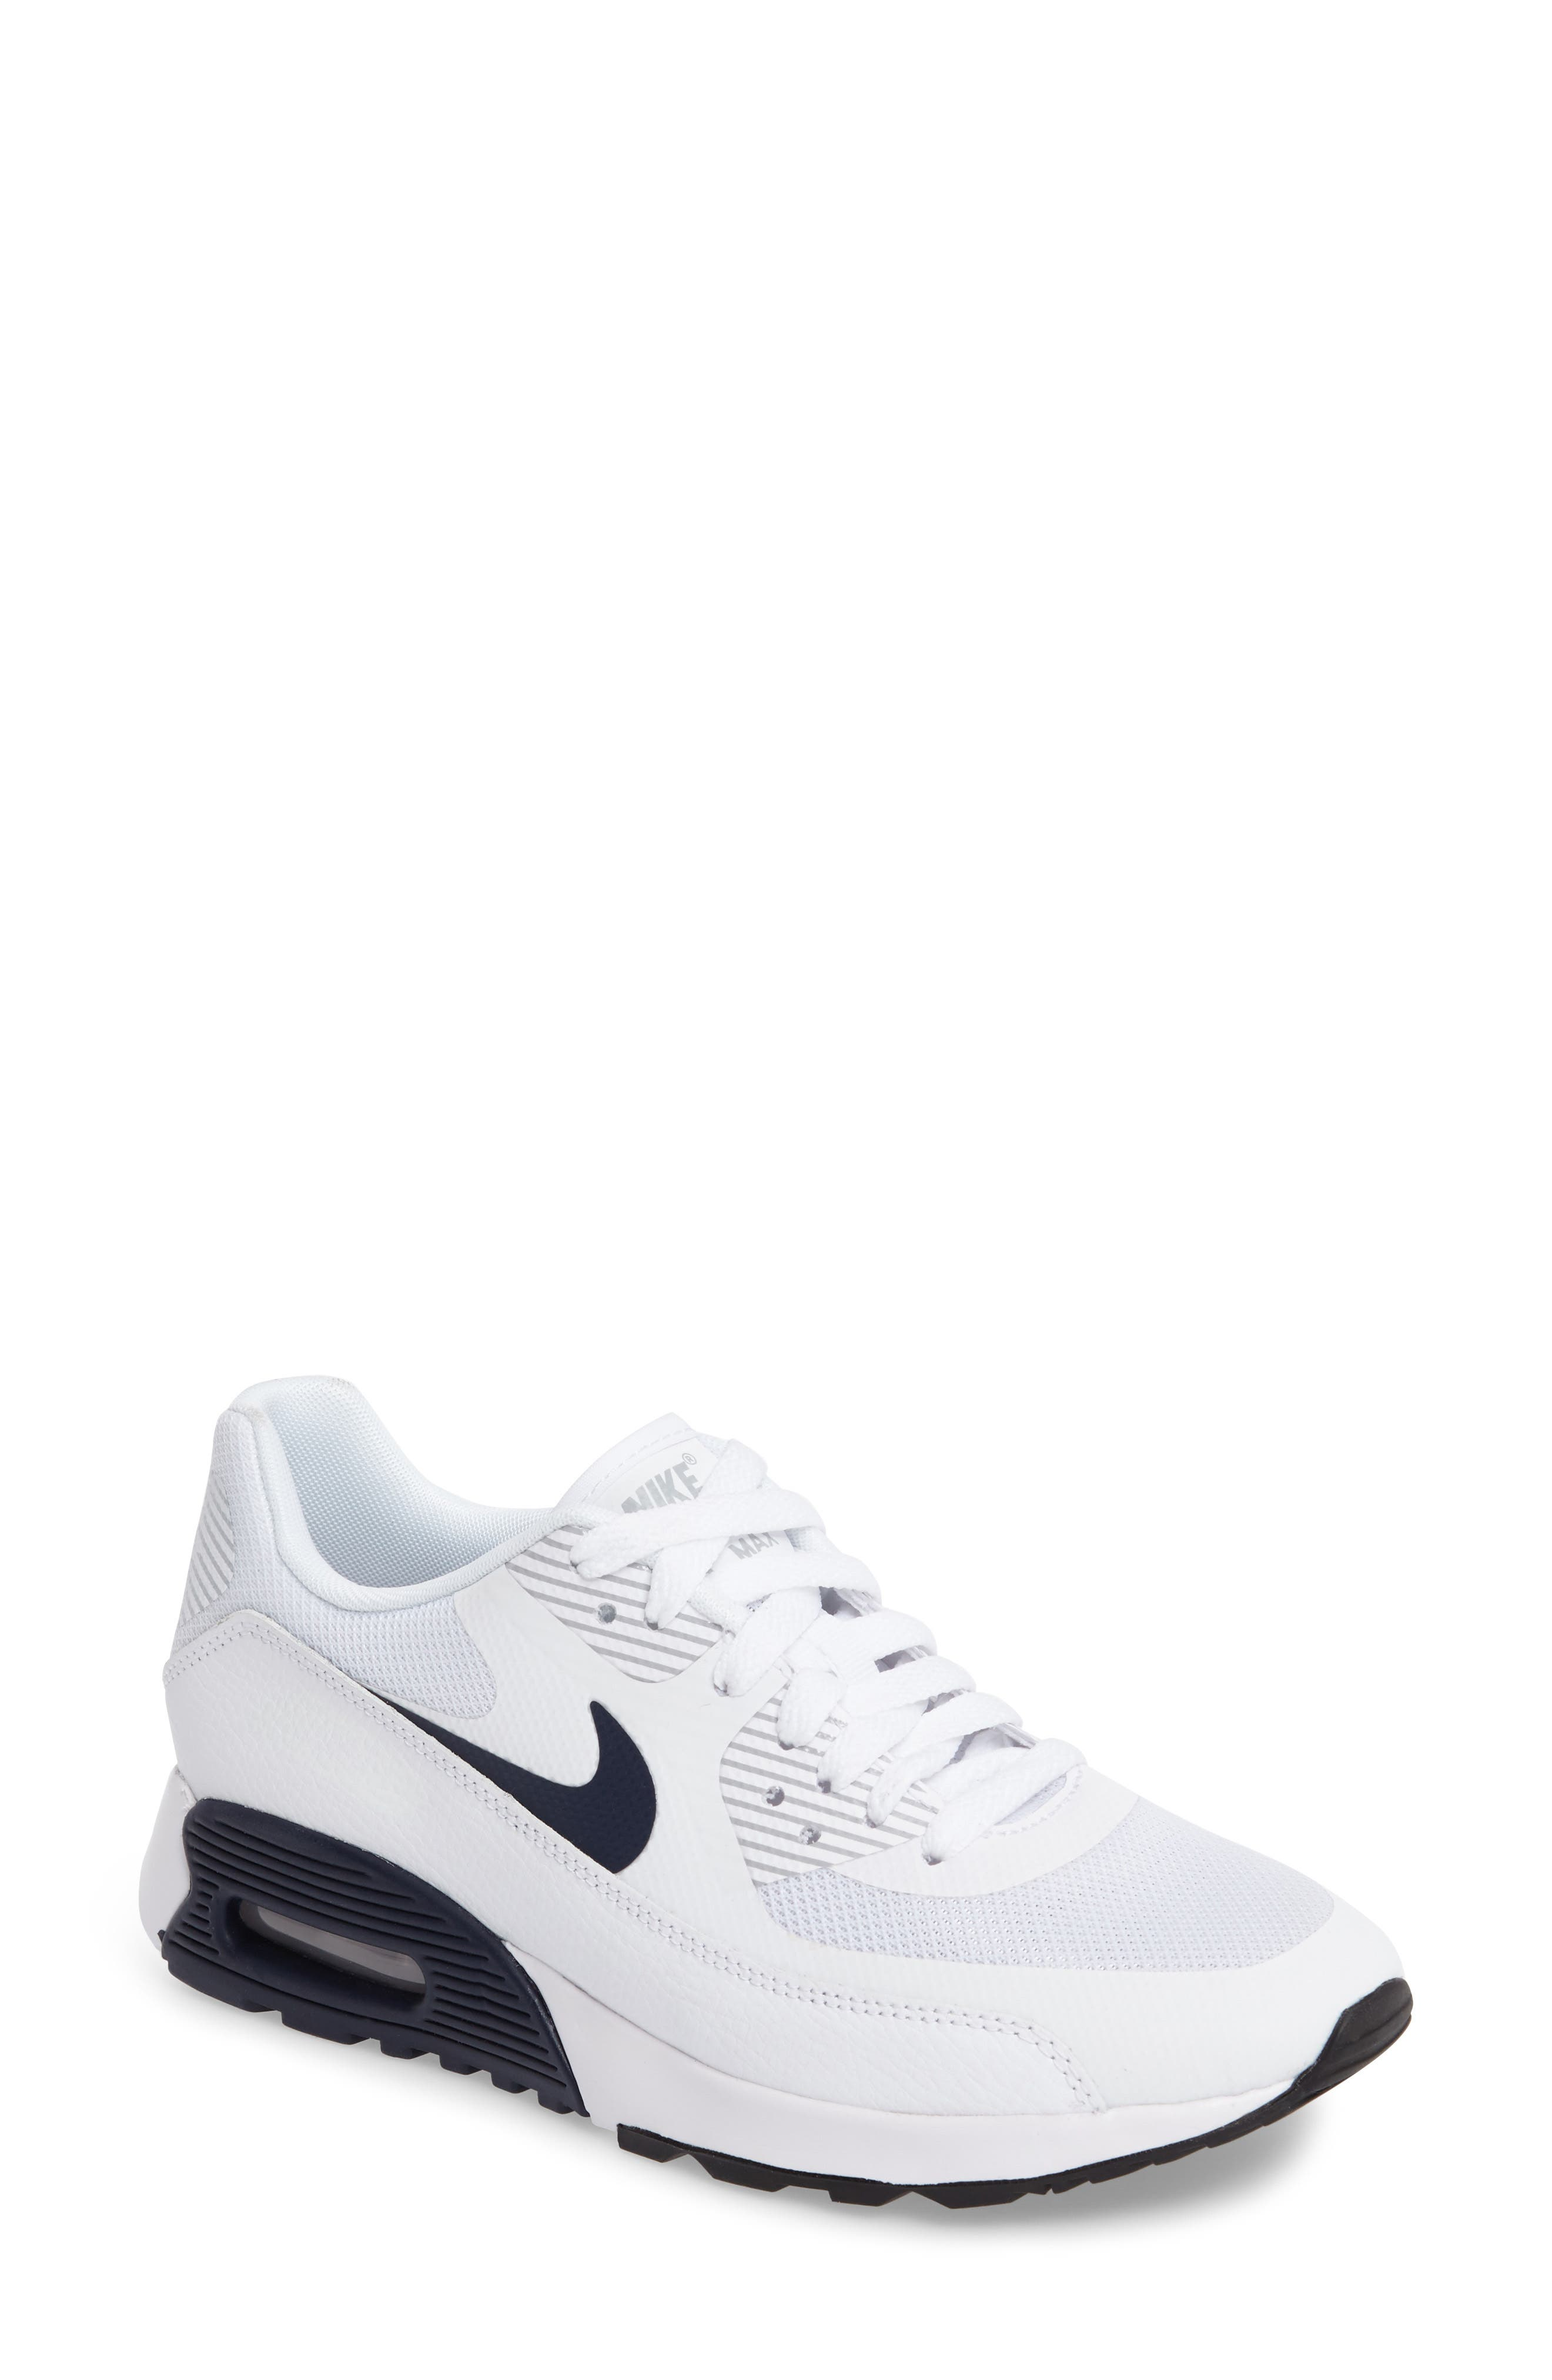 Air Max 90 Ultra 2.0 Sneaker,                         Main,                         color, White/ Navy/ Wolf Grey/ Black